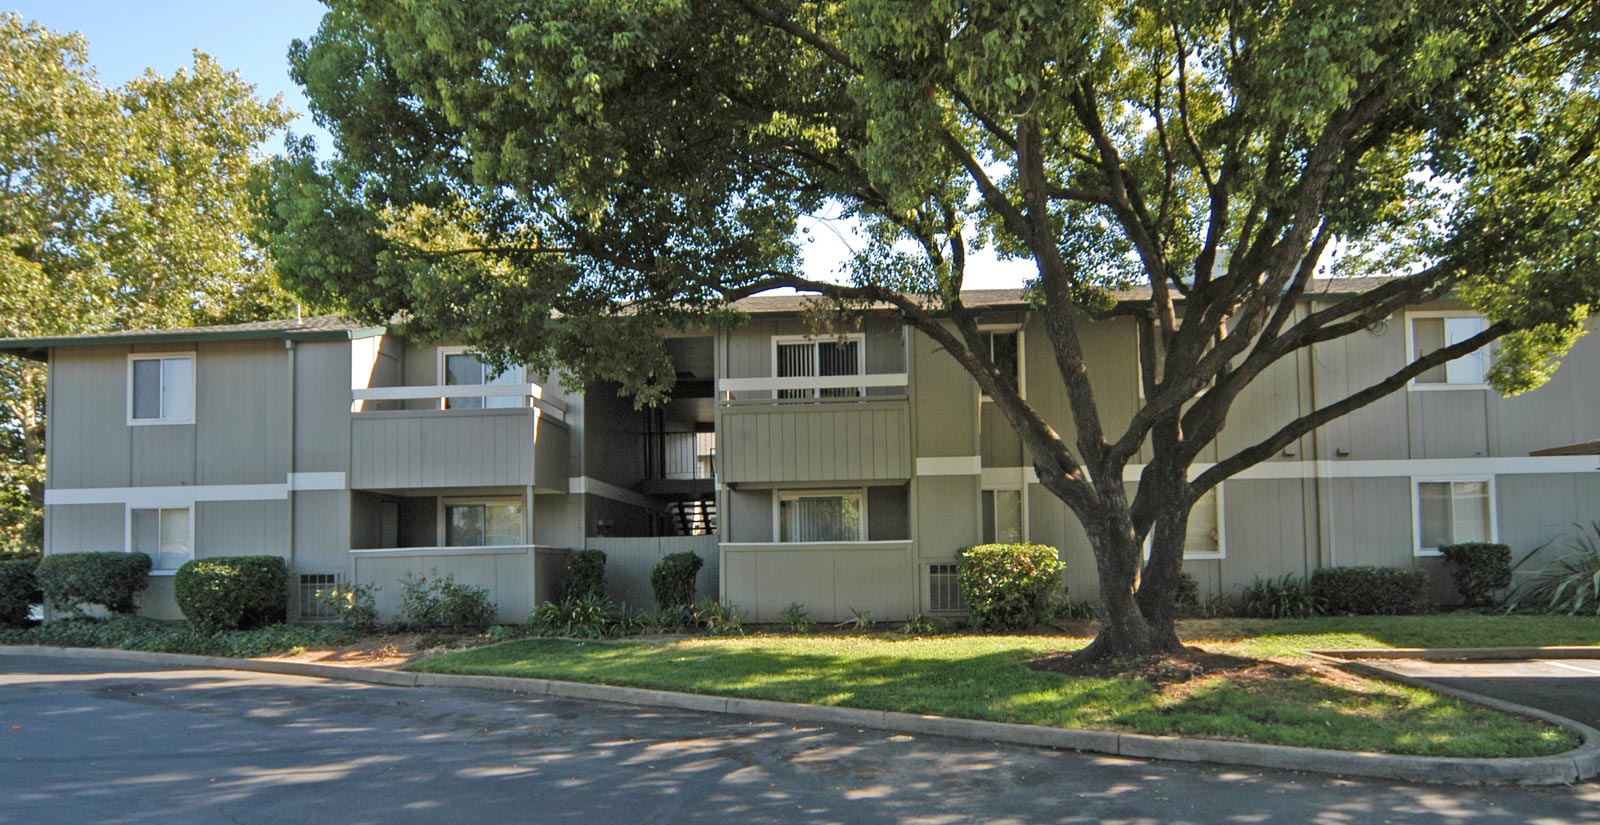 Tree shaded apartments in Sacramento